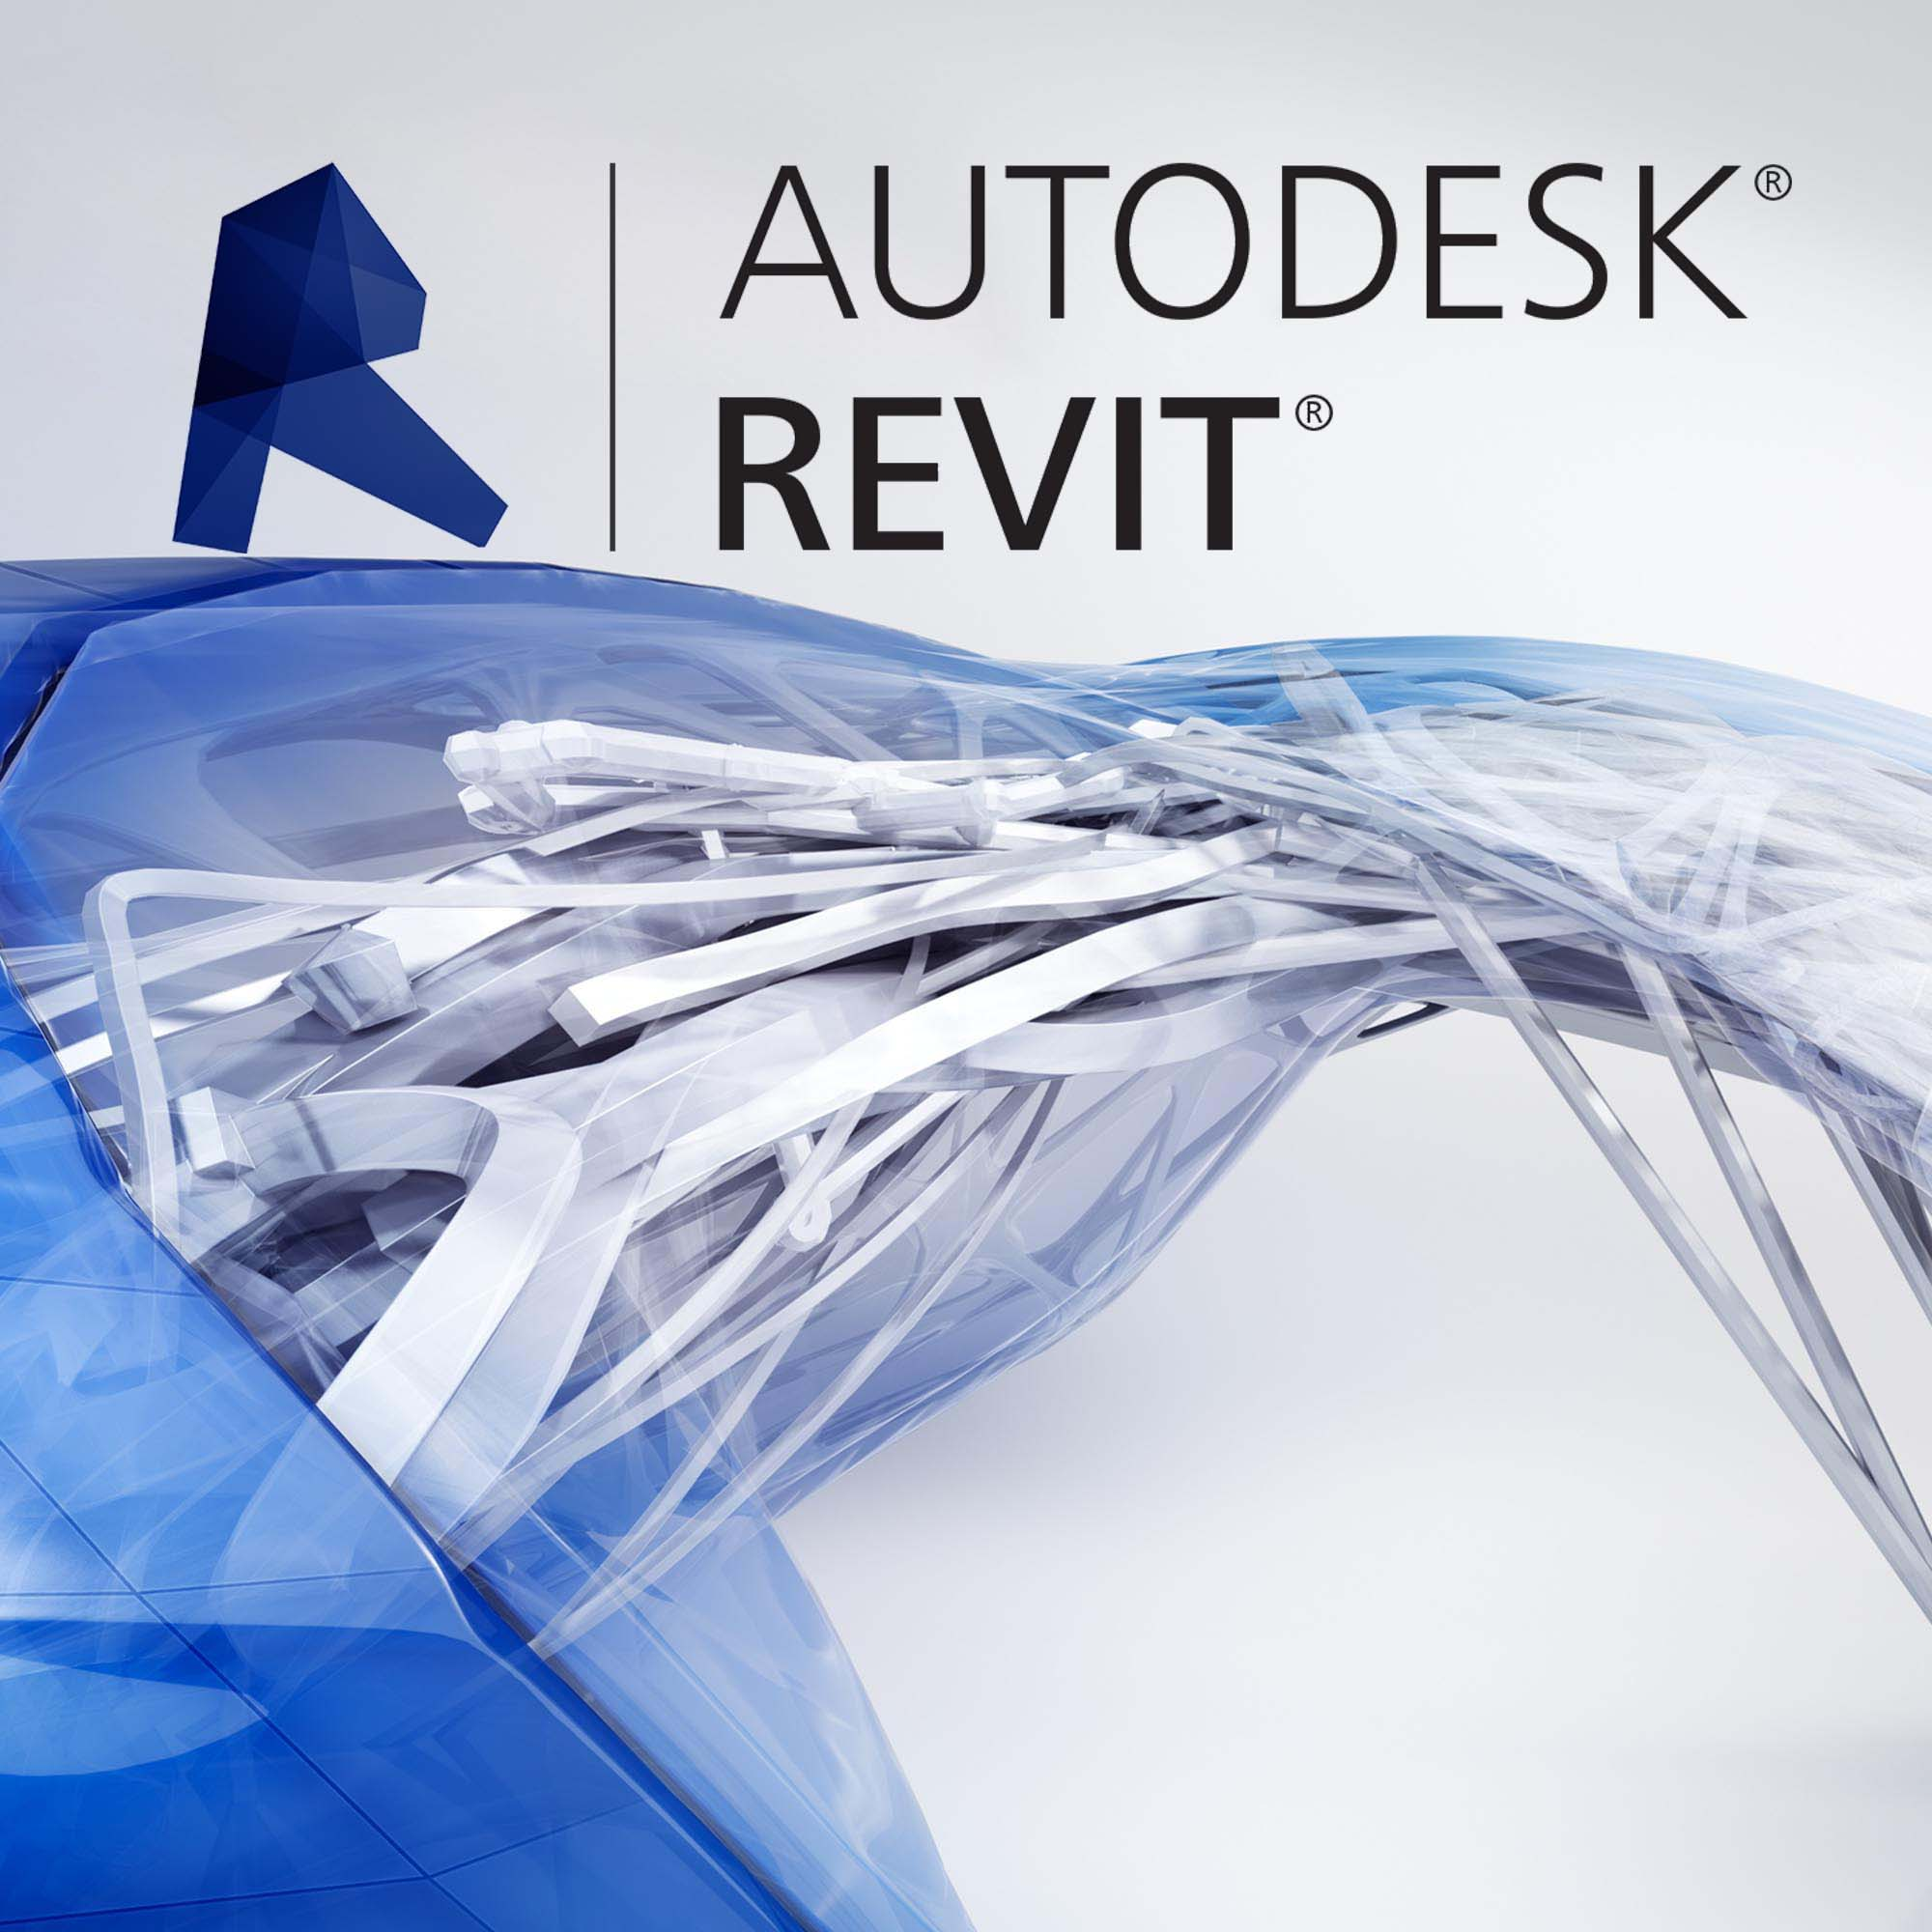 autodesk-revit-20152000-x-2000-235-kb-jpeg-x